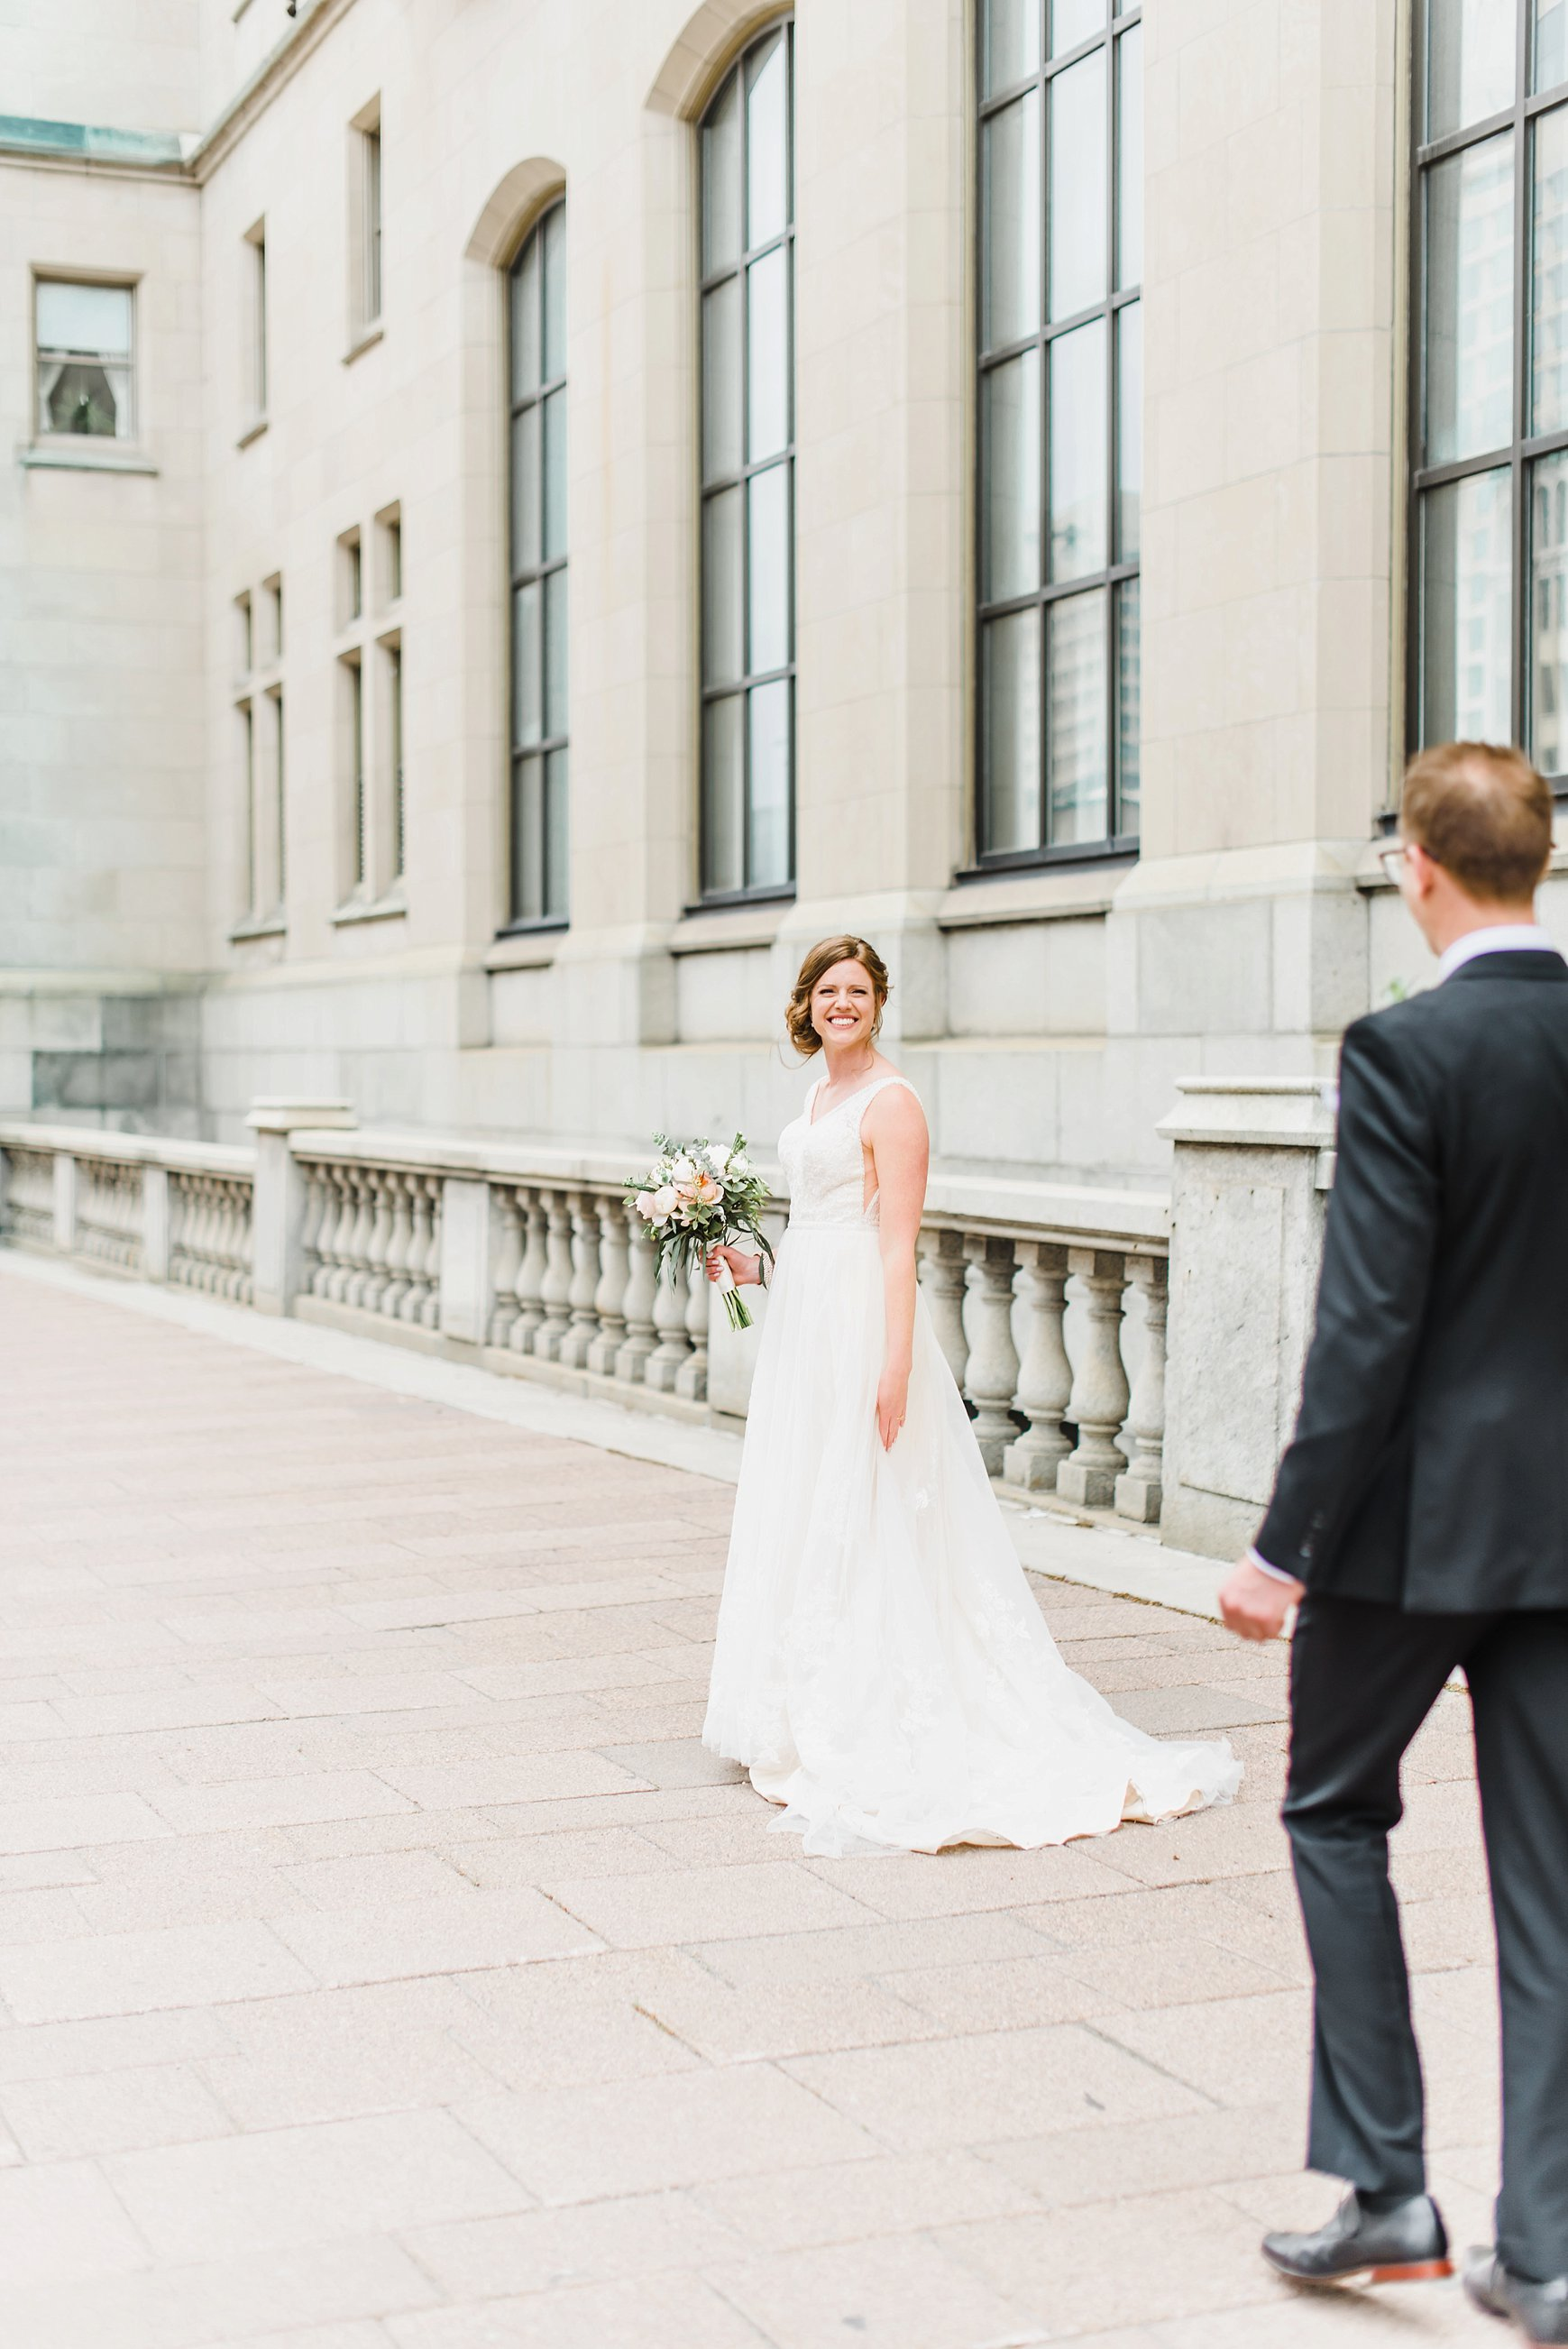 light airy indie fine art ottawa wedding photographer | Ali and Batoul Photography_0336.jpg